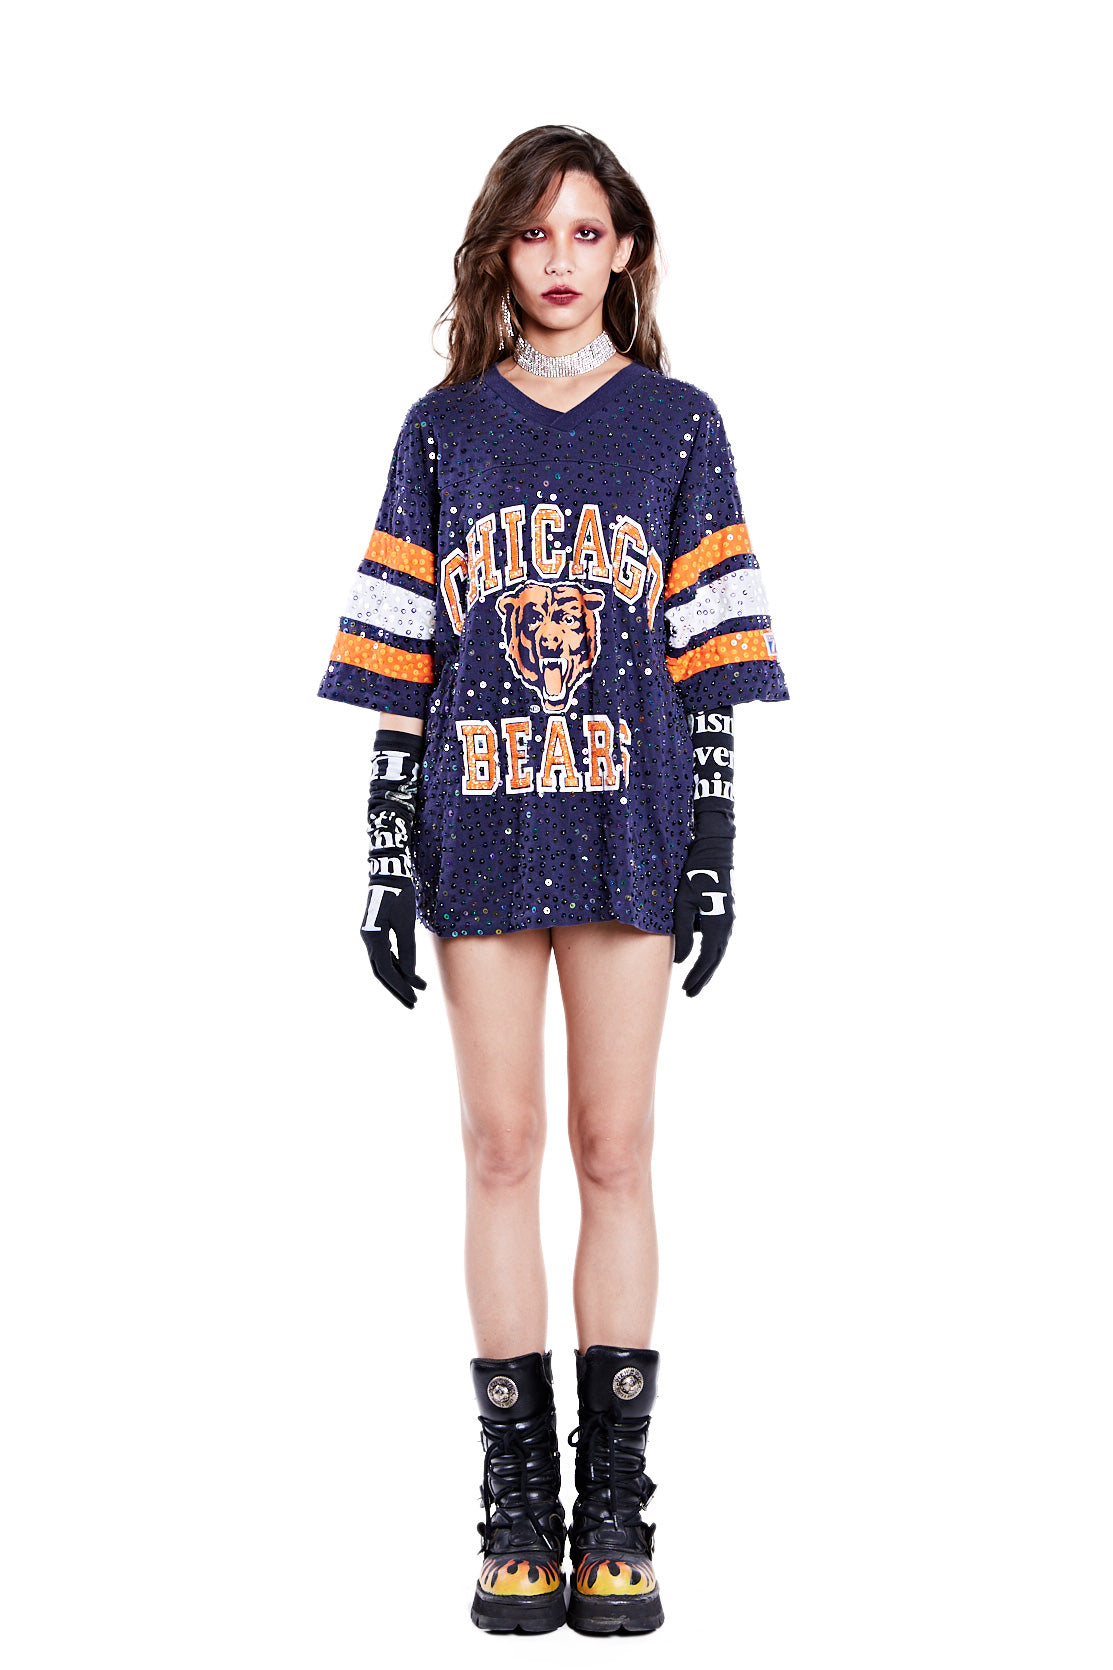 American Football Jersey Top - Chicago Bears - I LOVE DIY by Panida